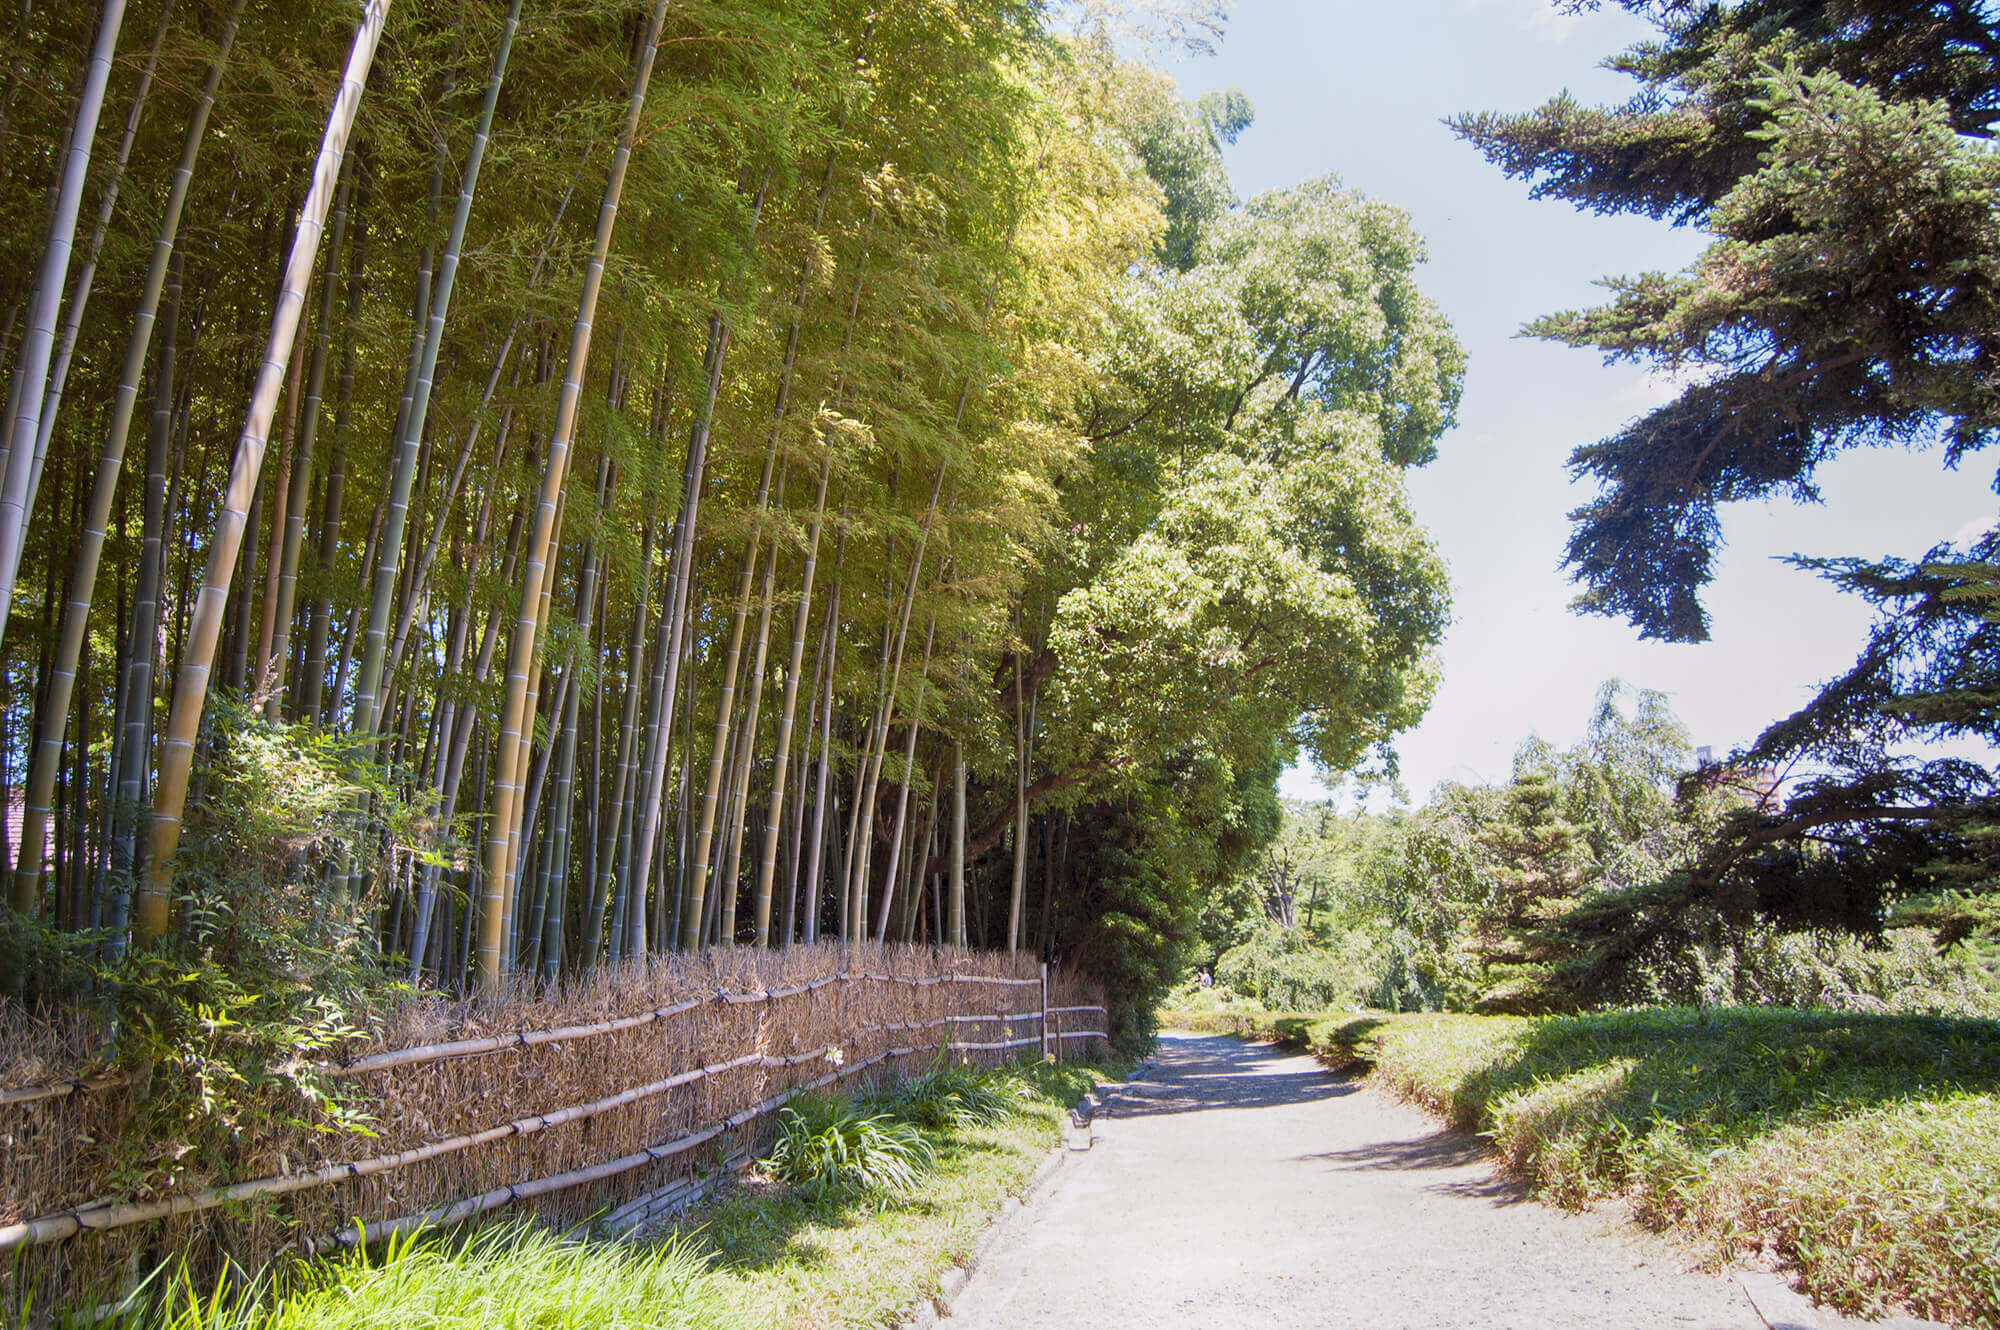 Bambu forest in Shirotori Garden